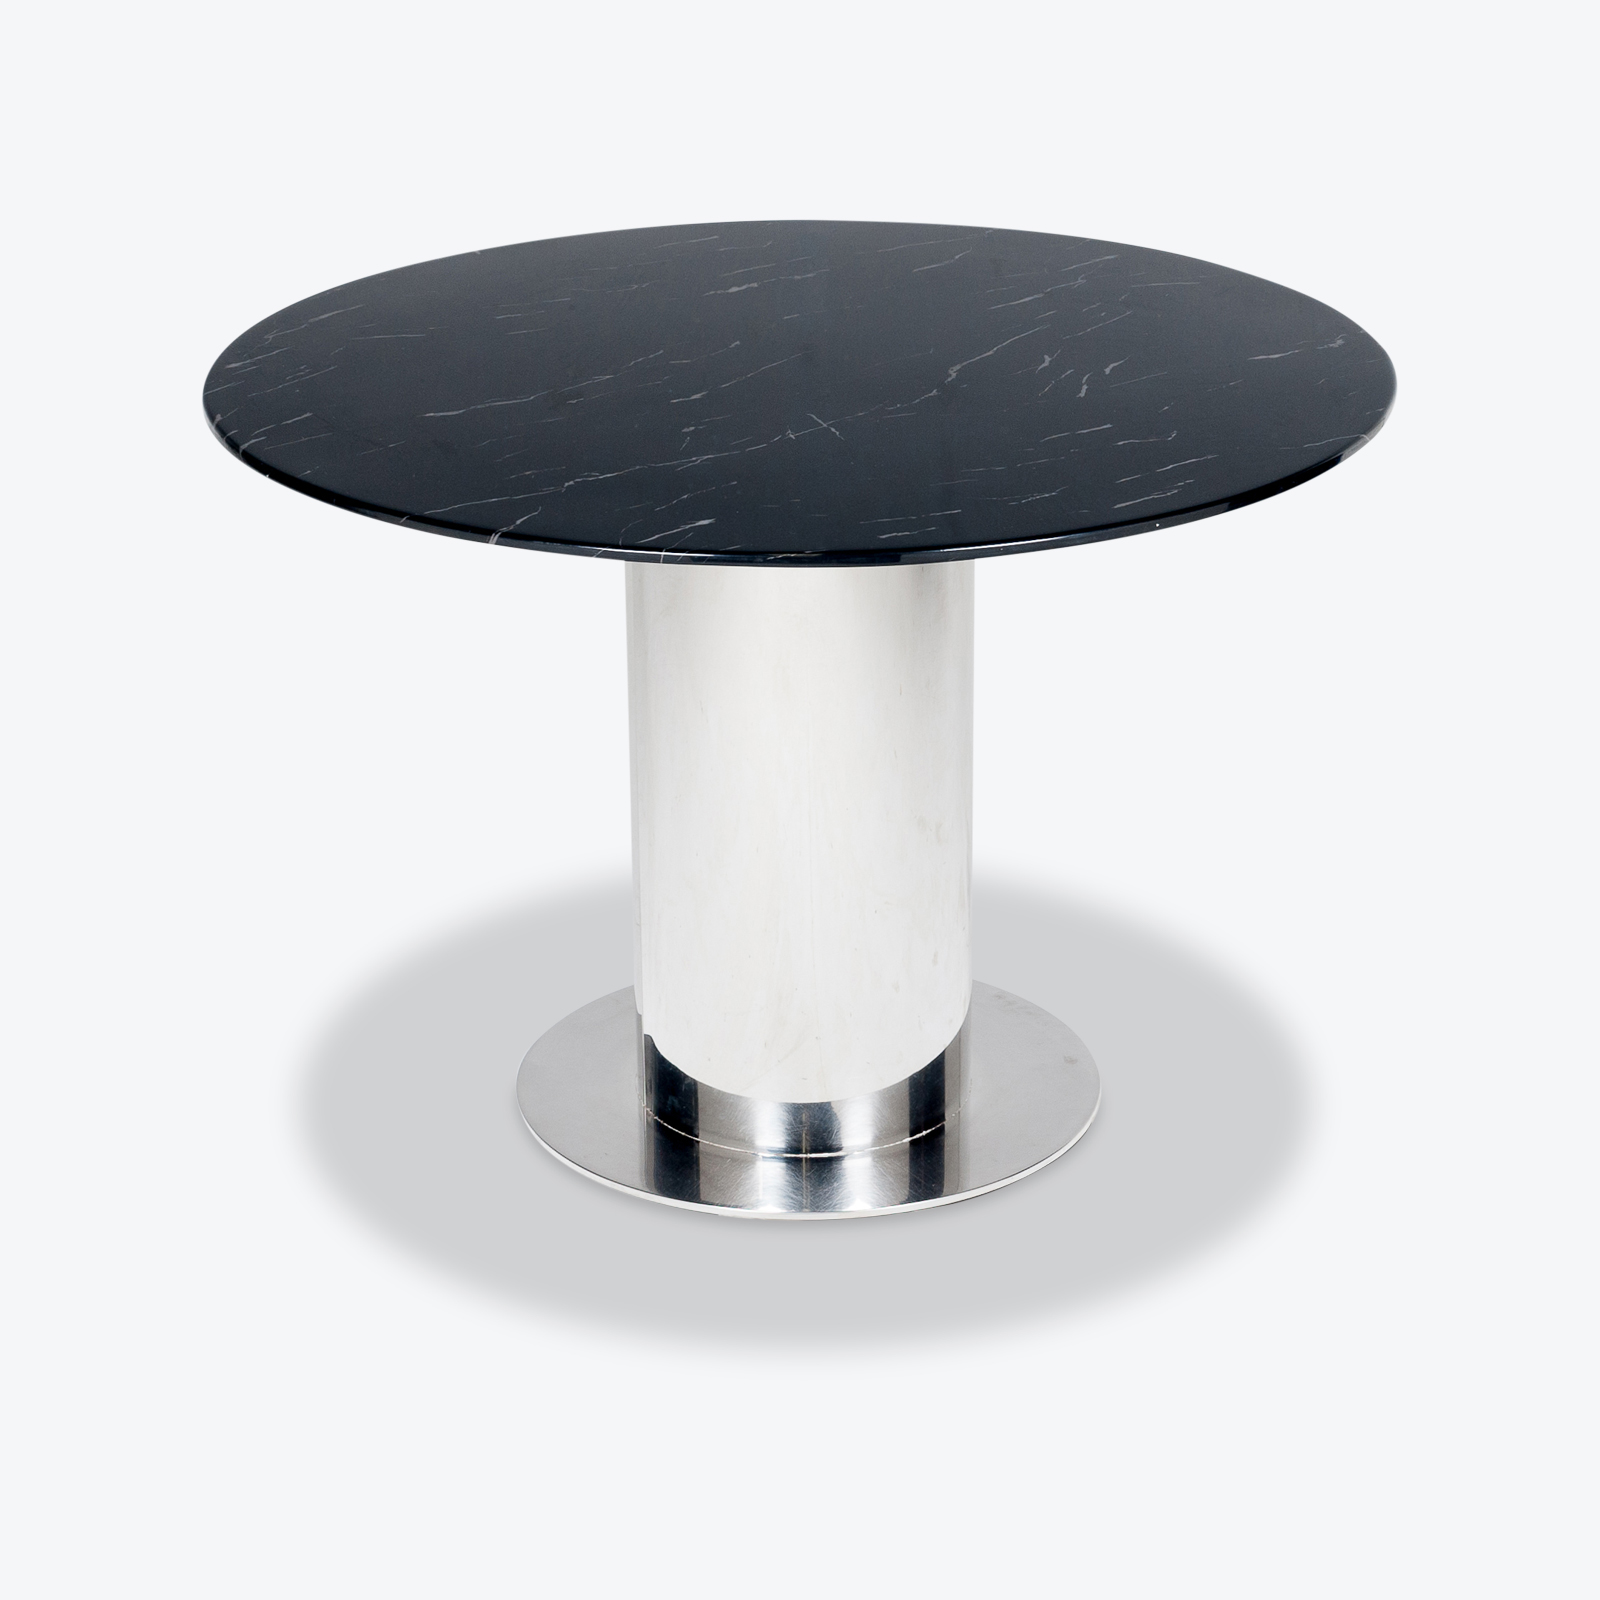 Round Dining Table With Marble Top And Chrome Base In The Style Of Ettore Sottsass, 1980s, The Netherlands Hero